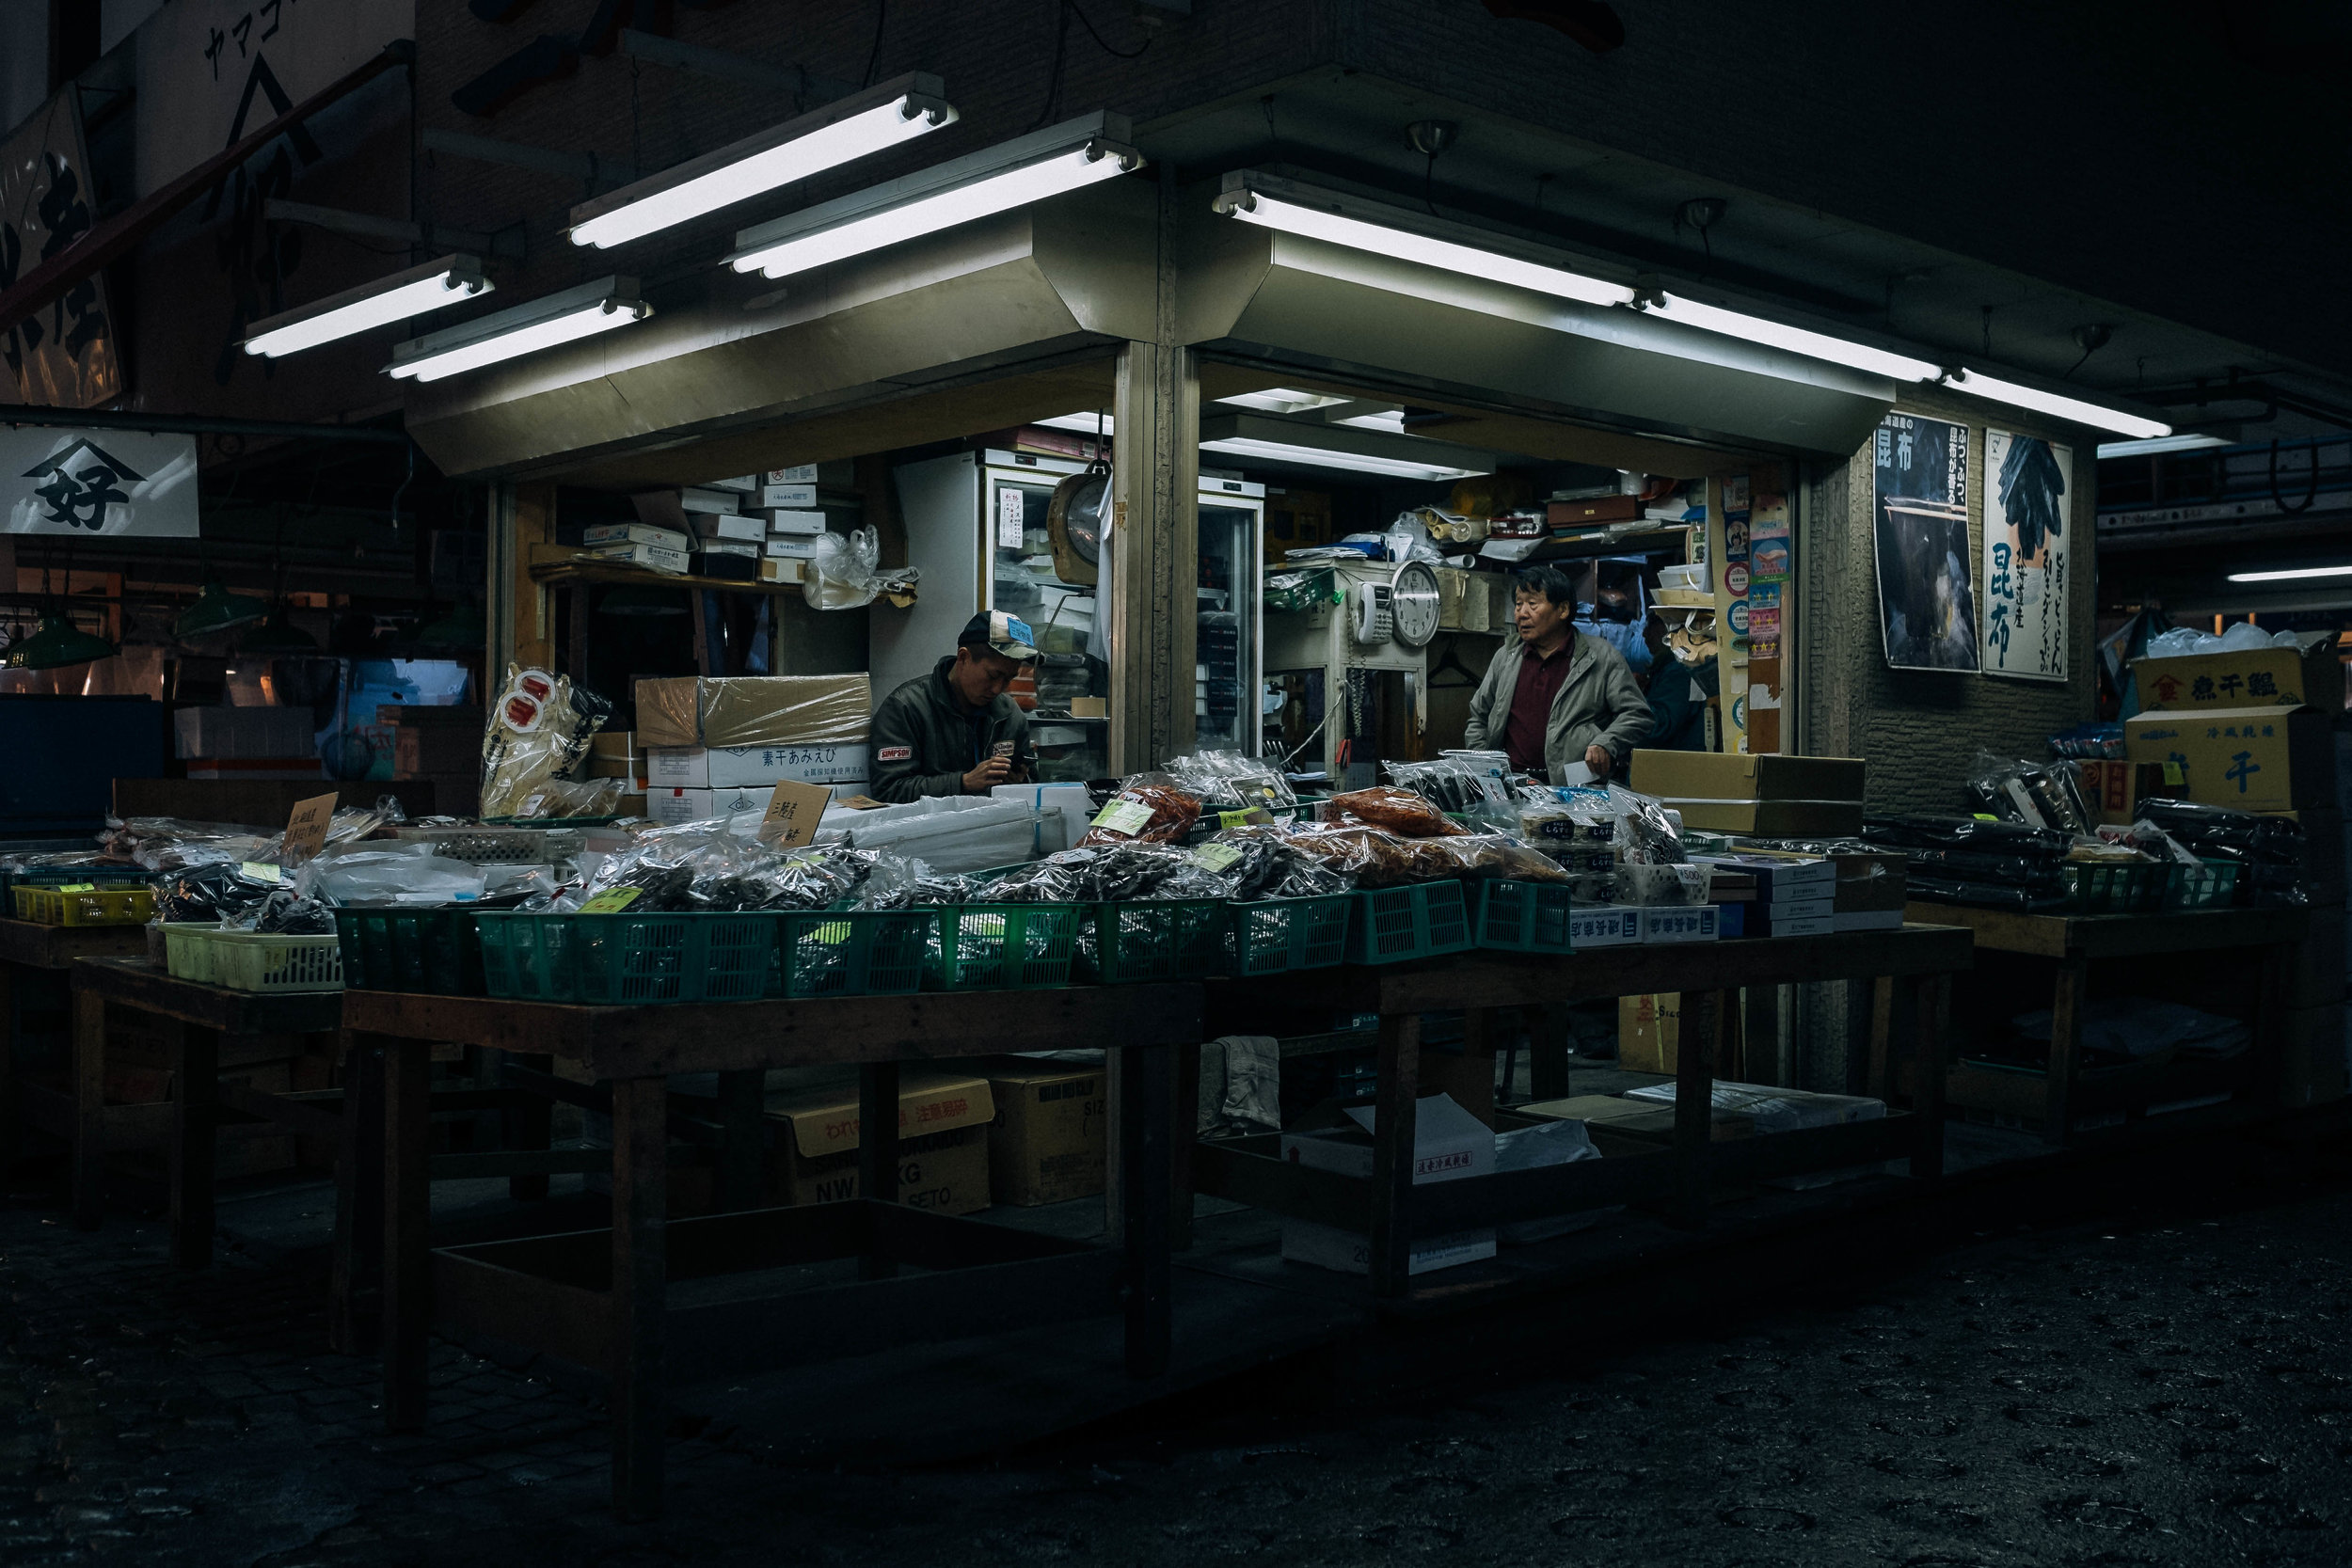 Waiting for customers at Tsukiji Fish Market, Tokyo.